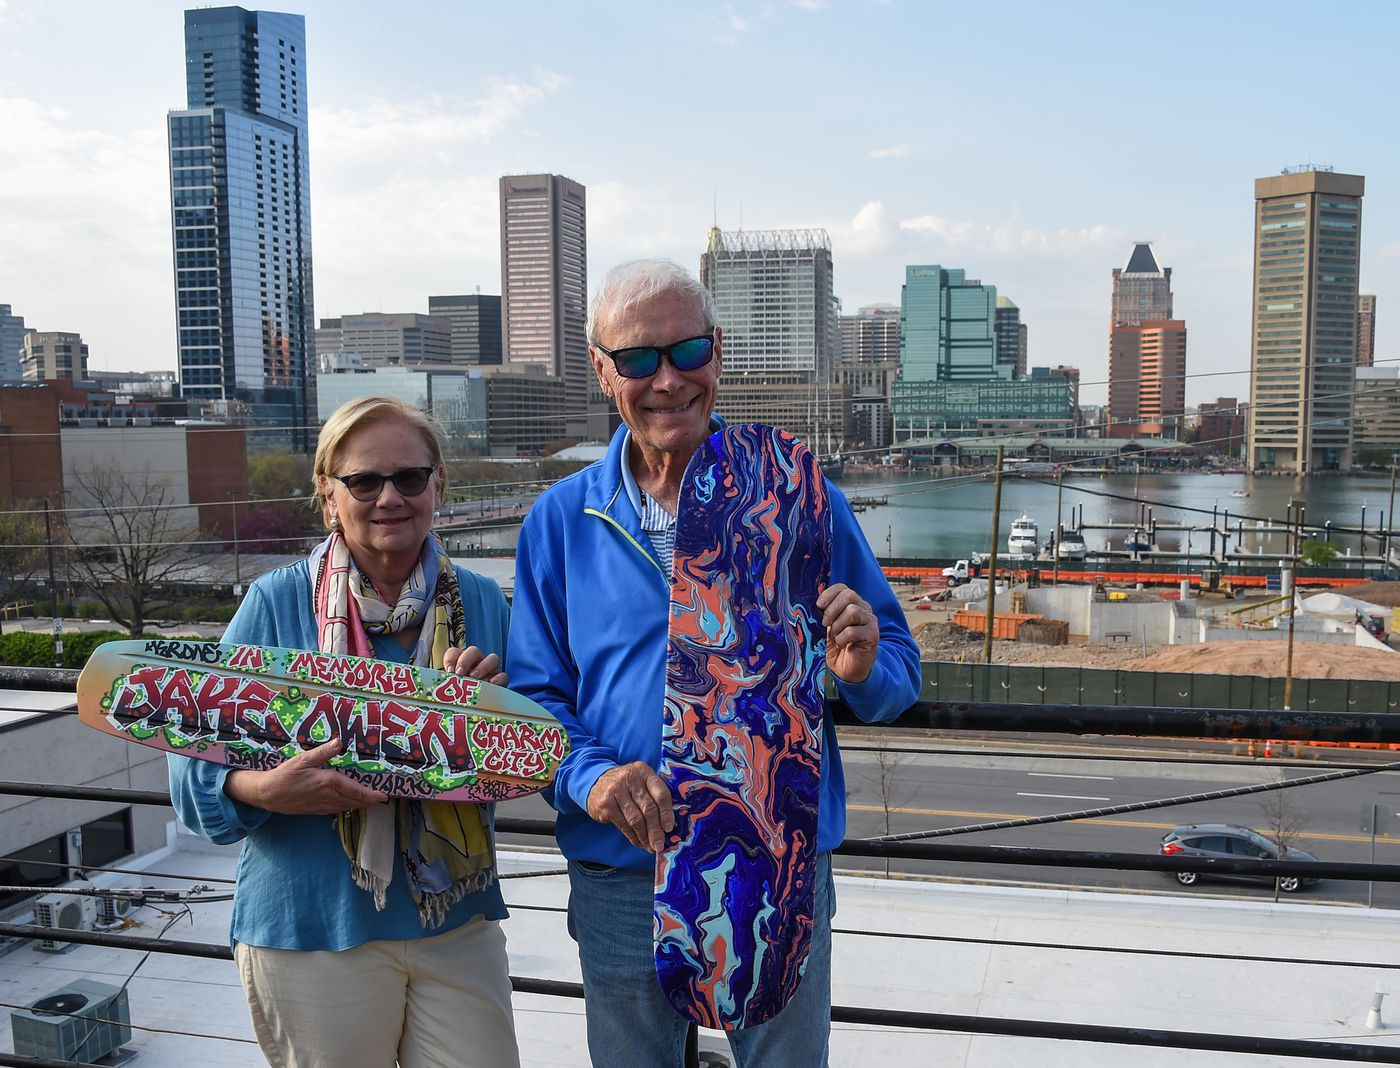 Cindy Conklin and her husband, Bob Merbler, display some of the skateboard decks up for auction at their home on Wednesday, April 7, 2021; the proceeds from the art sales will go to help fund the completion of Jake's Skate Park at Rash Field.